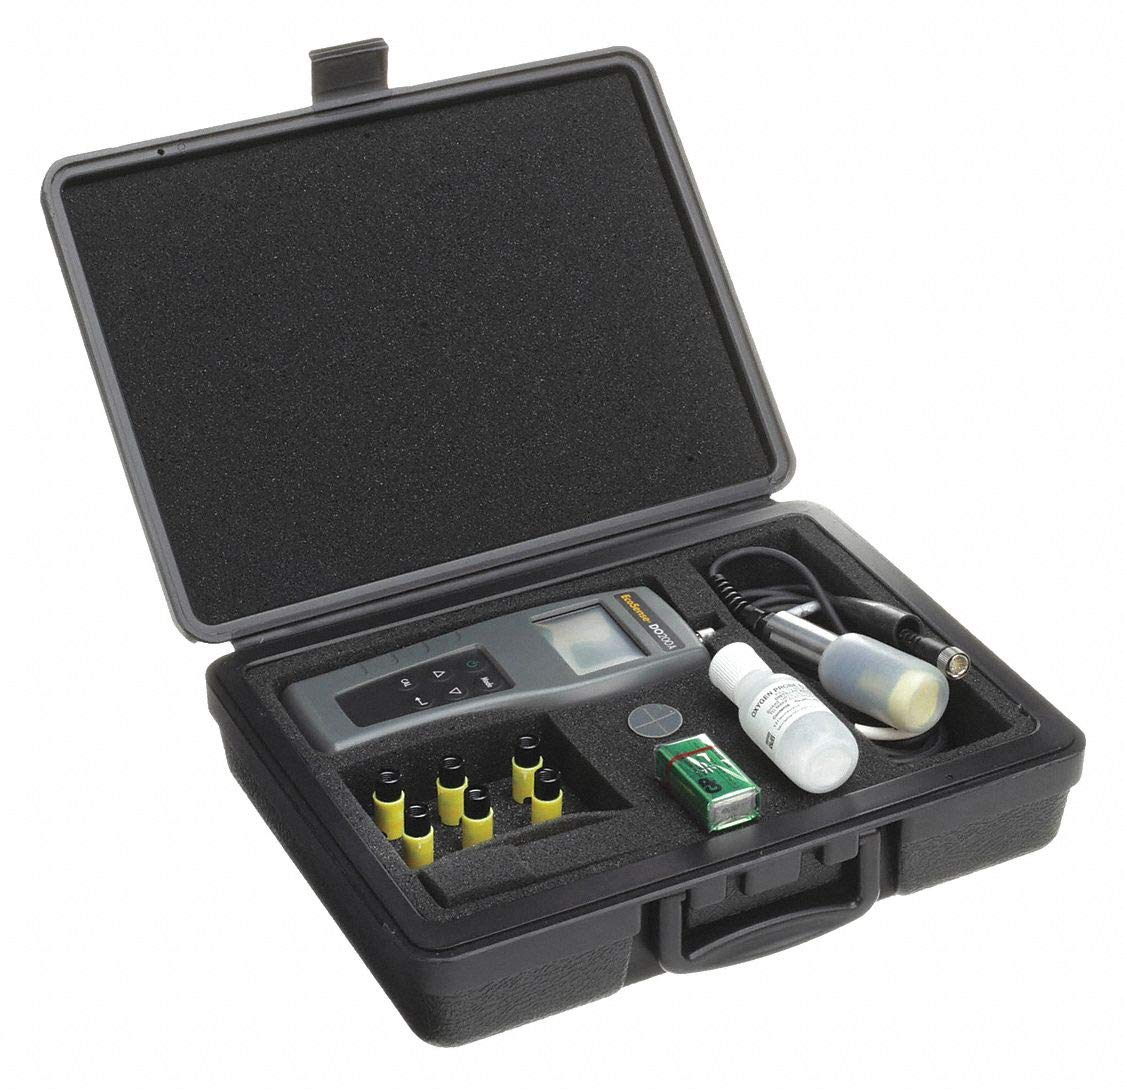 YSI DO200A Dissolved Oxygen and Temperature Instrument Thomas Scientific